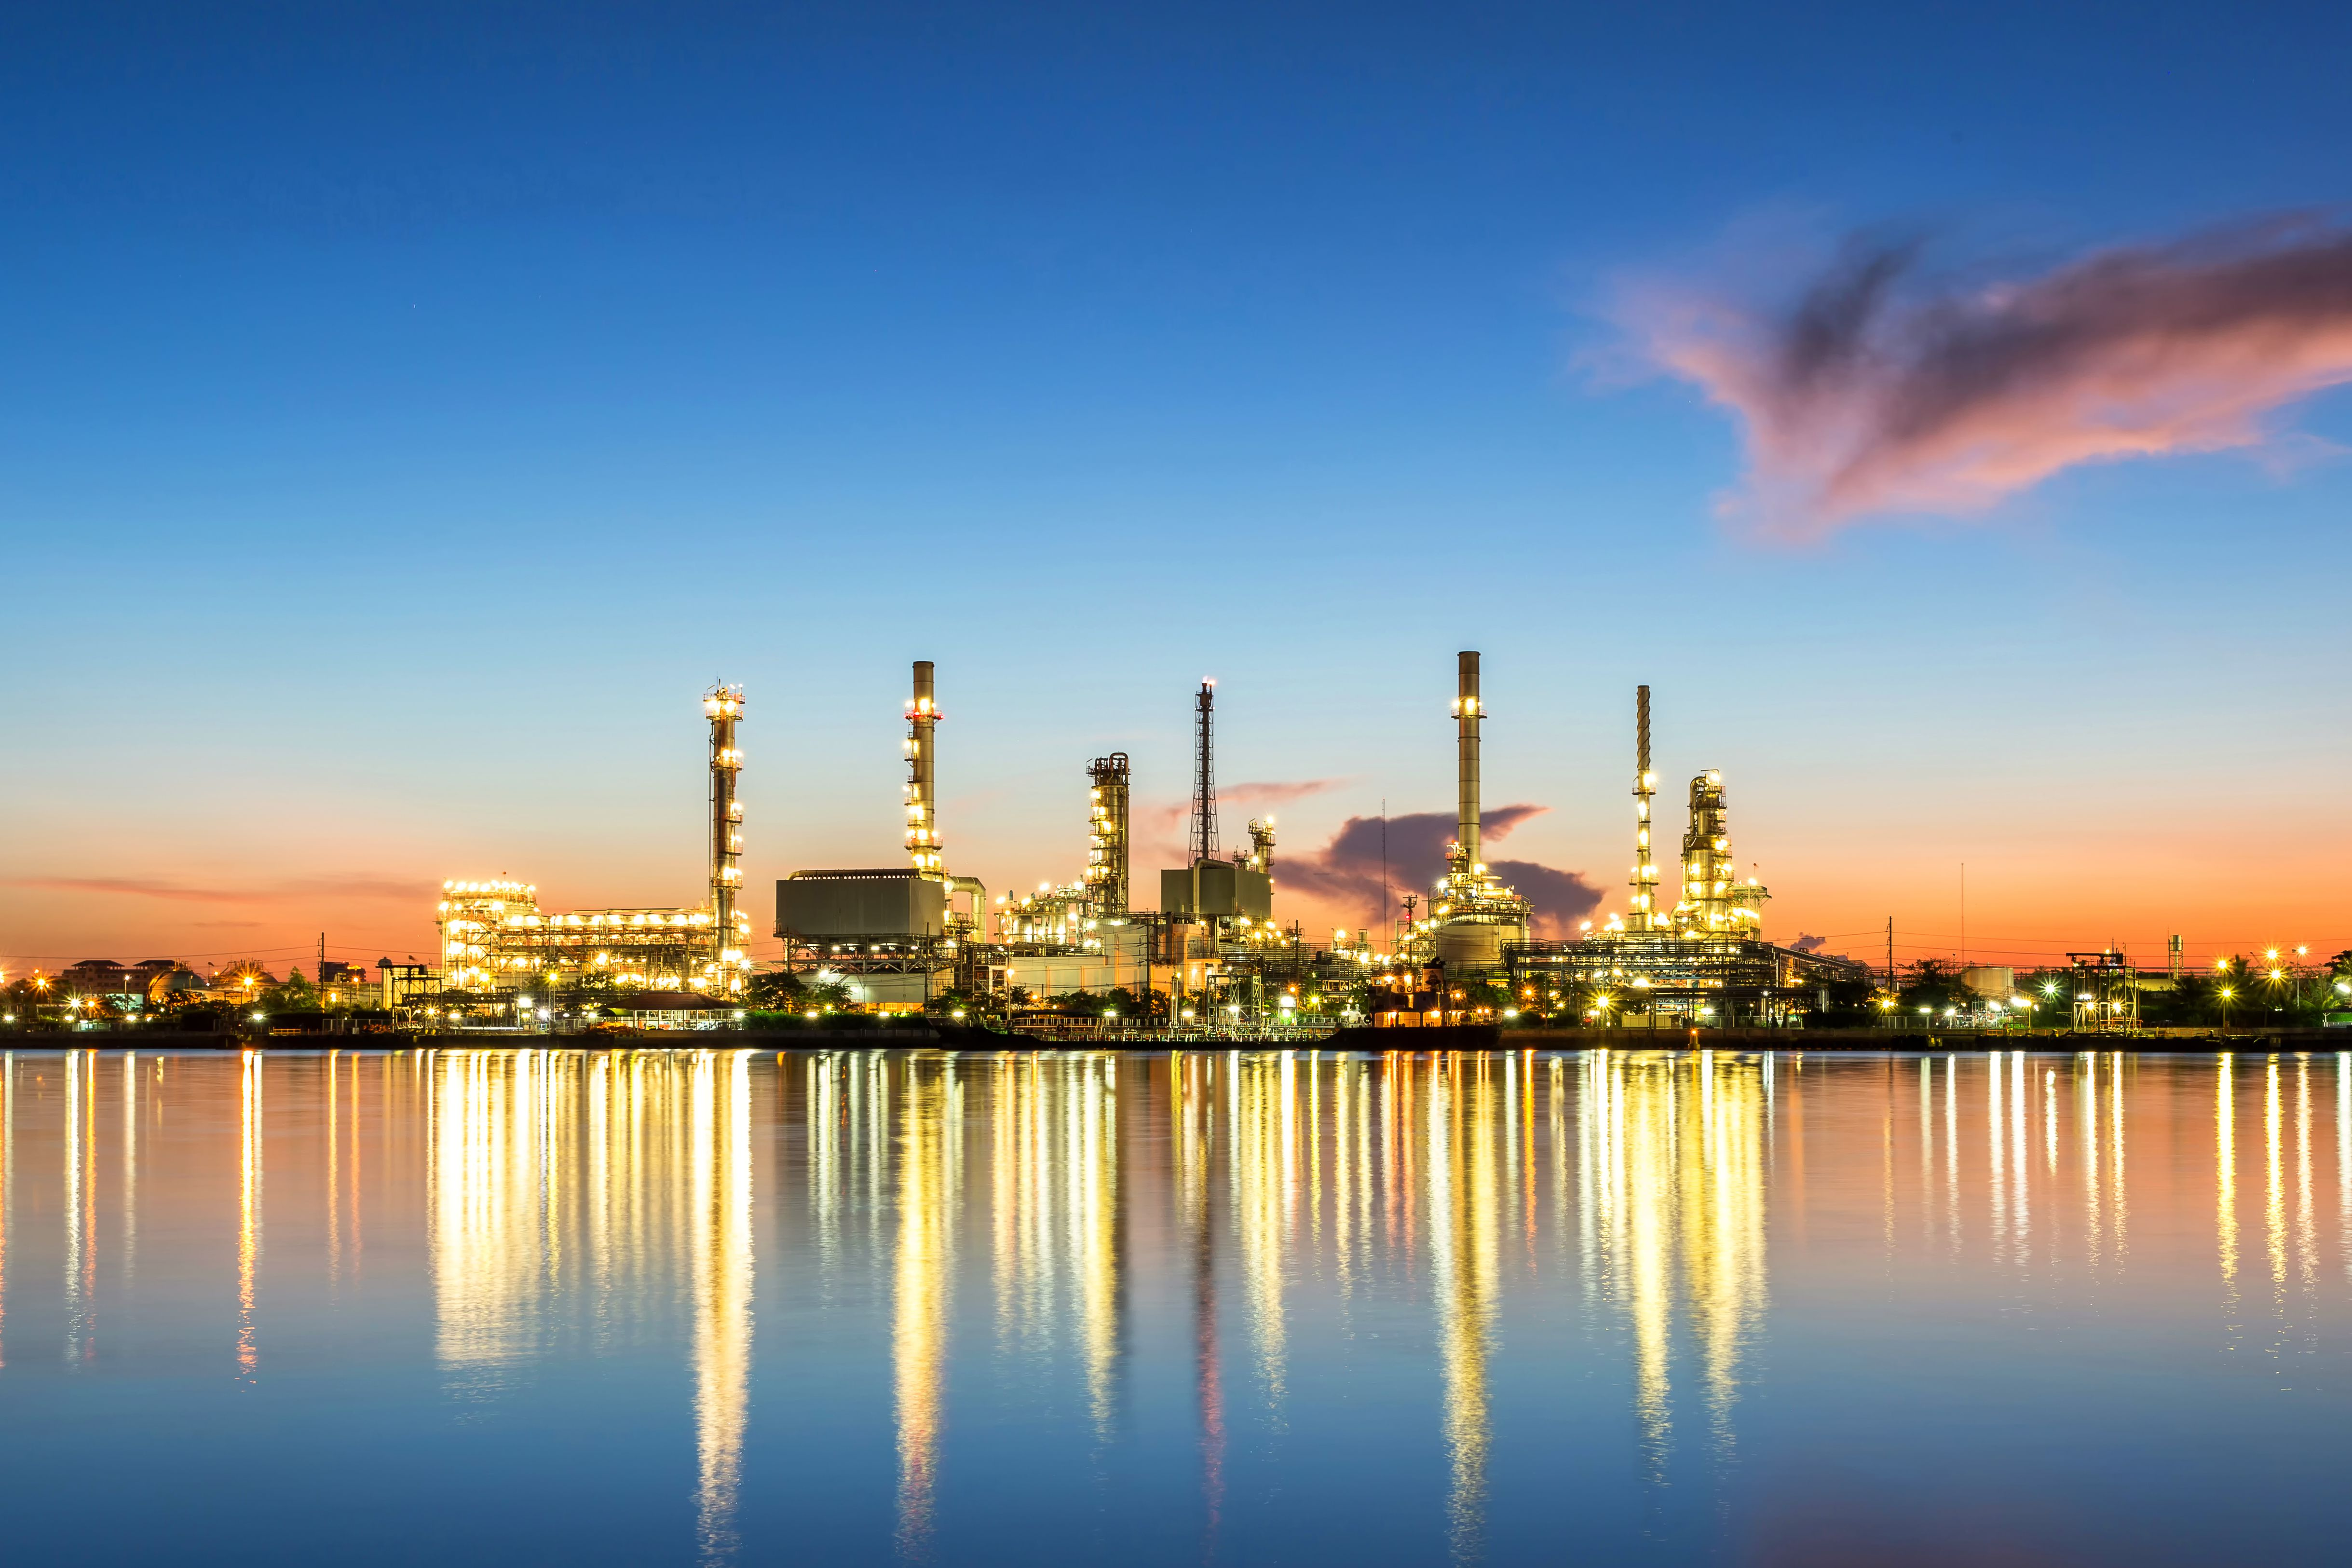 oil and gas industry   oil refinery and petrochemical plant at sunrise  831269902 098a78f713d045a7993640aa5dcb5e80.'